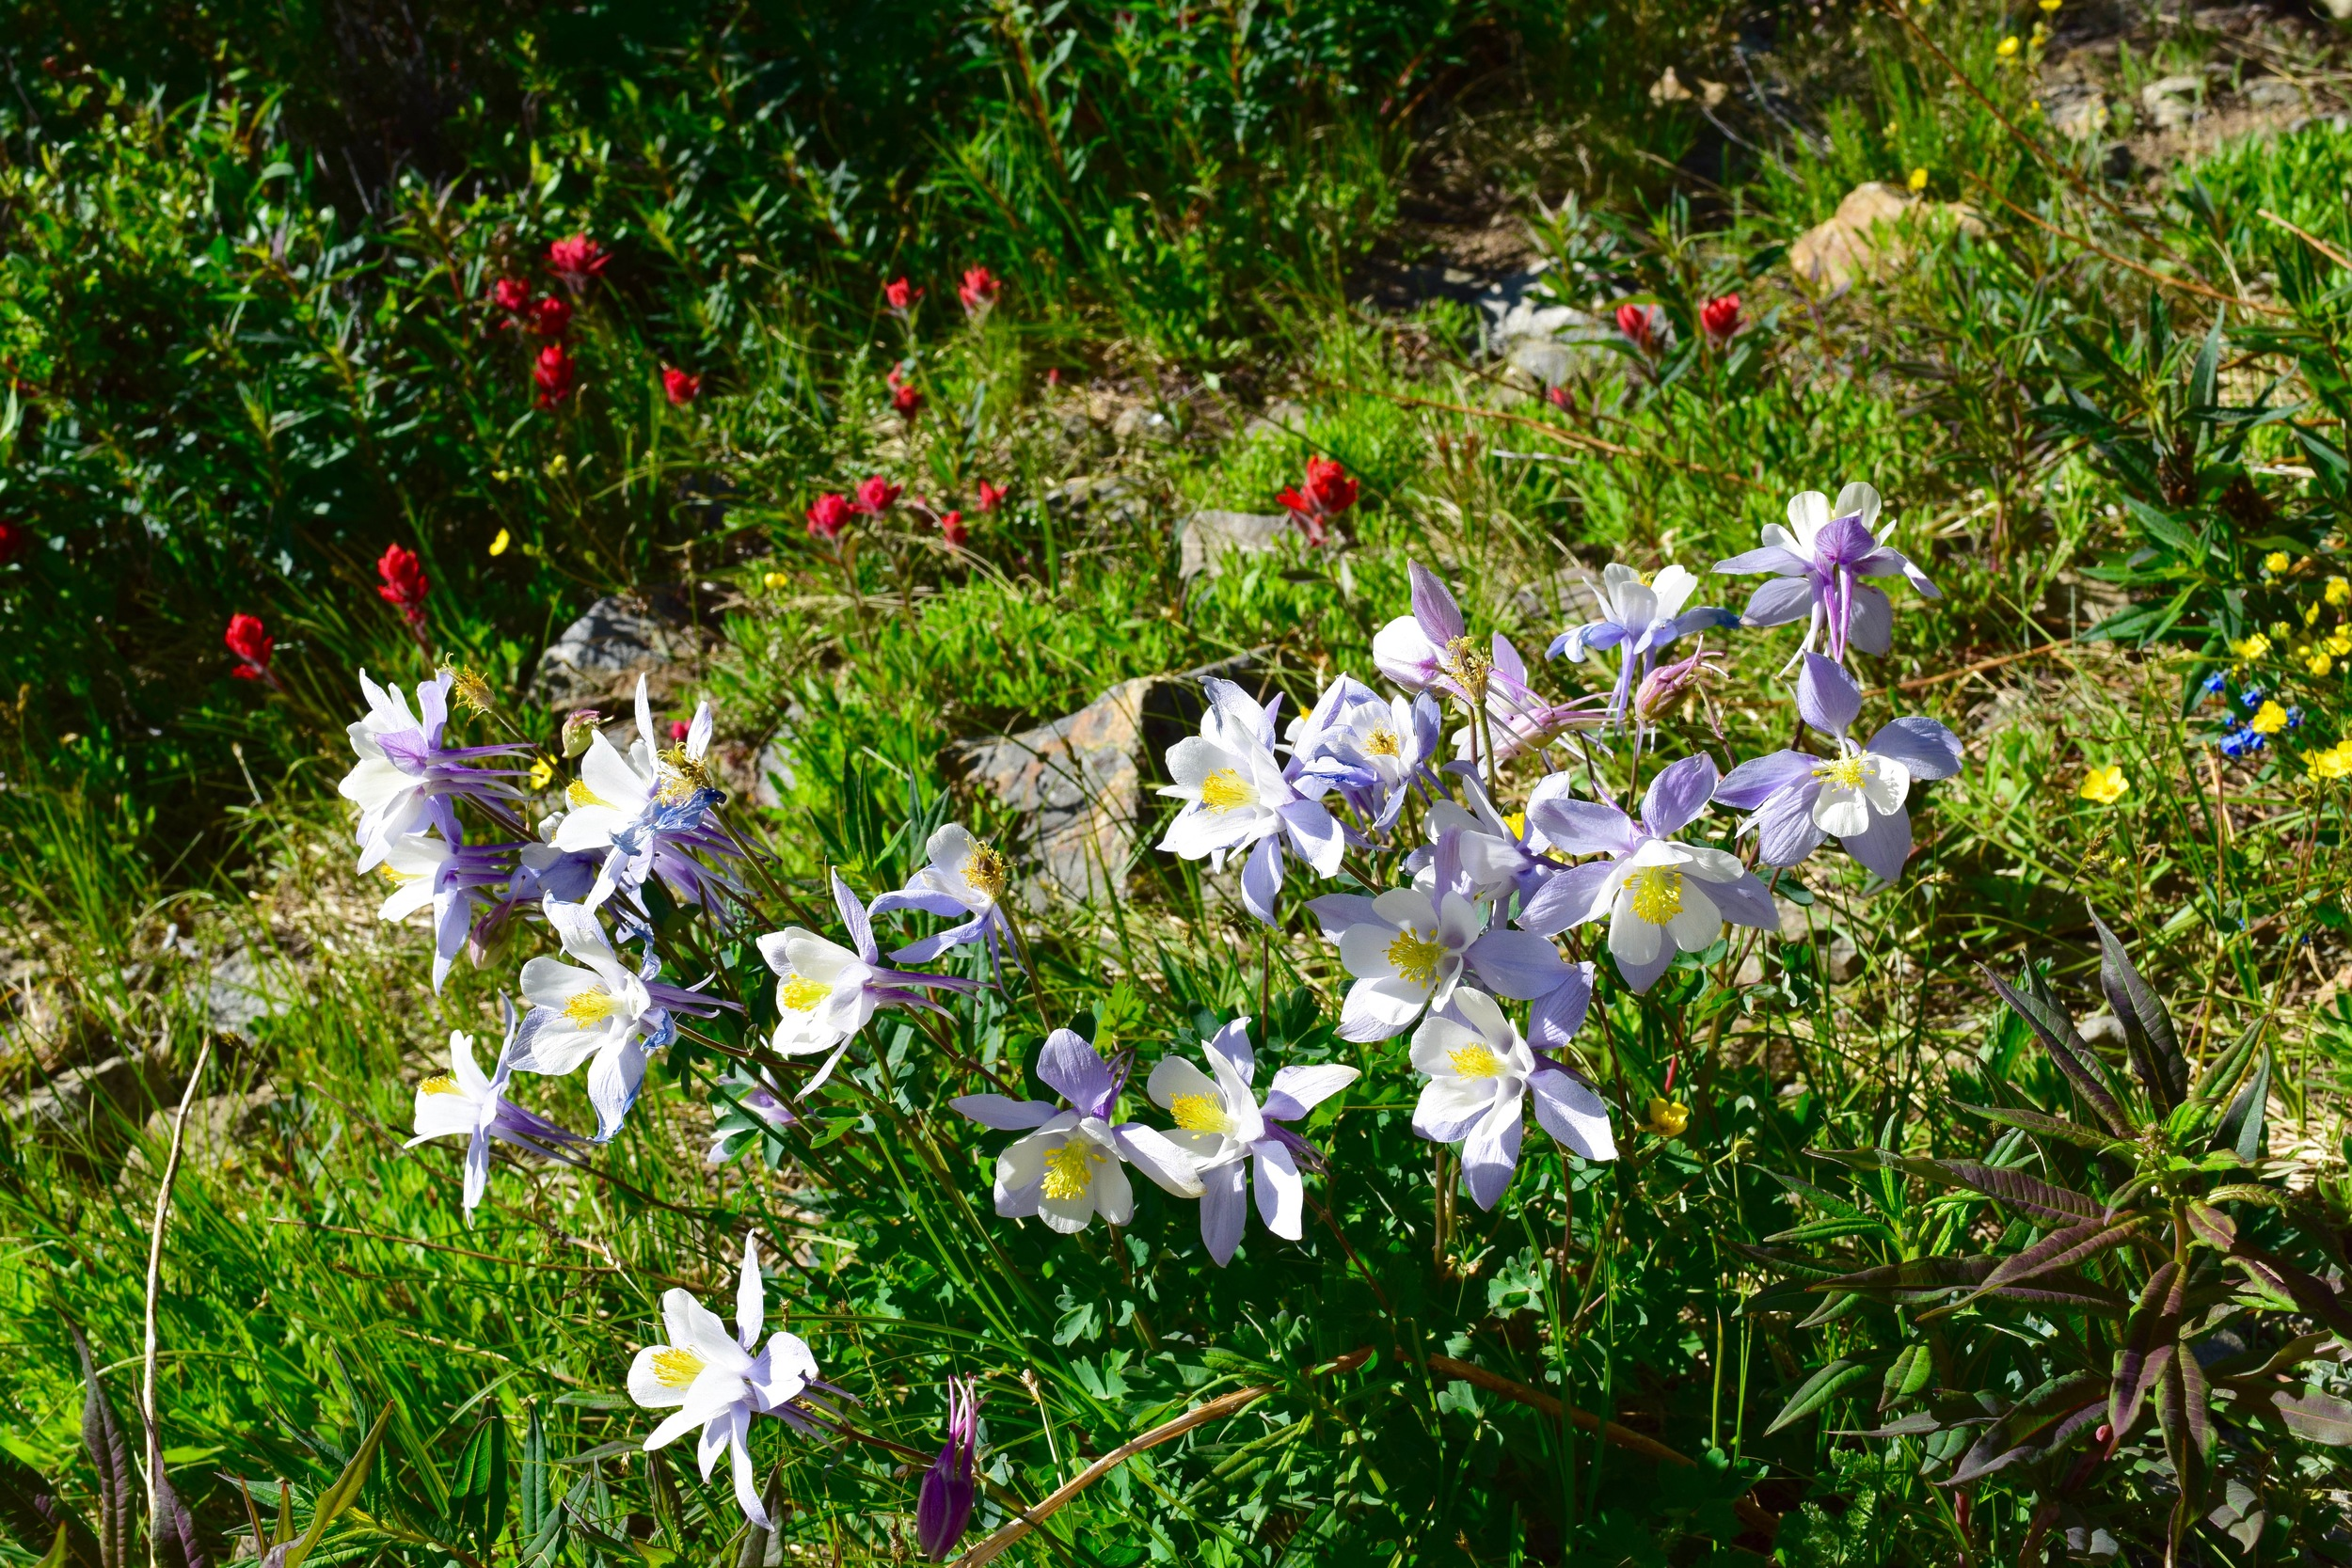 The Columbine - state flower!